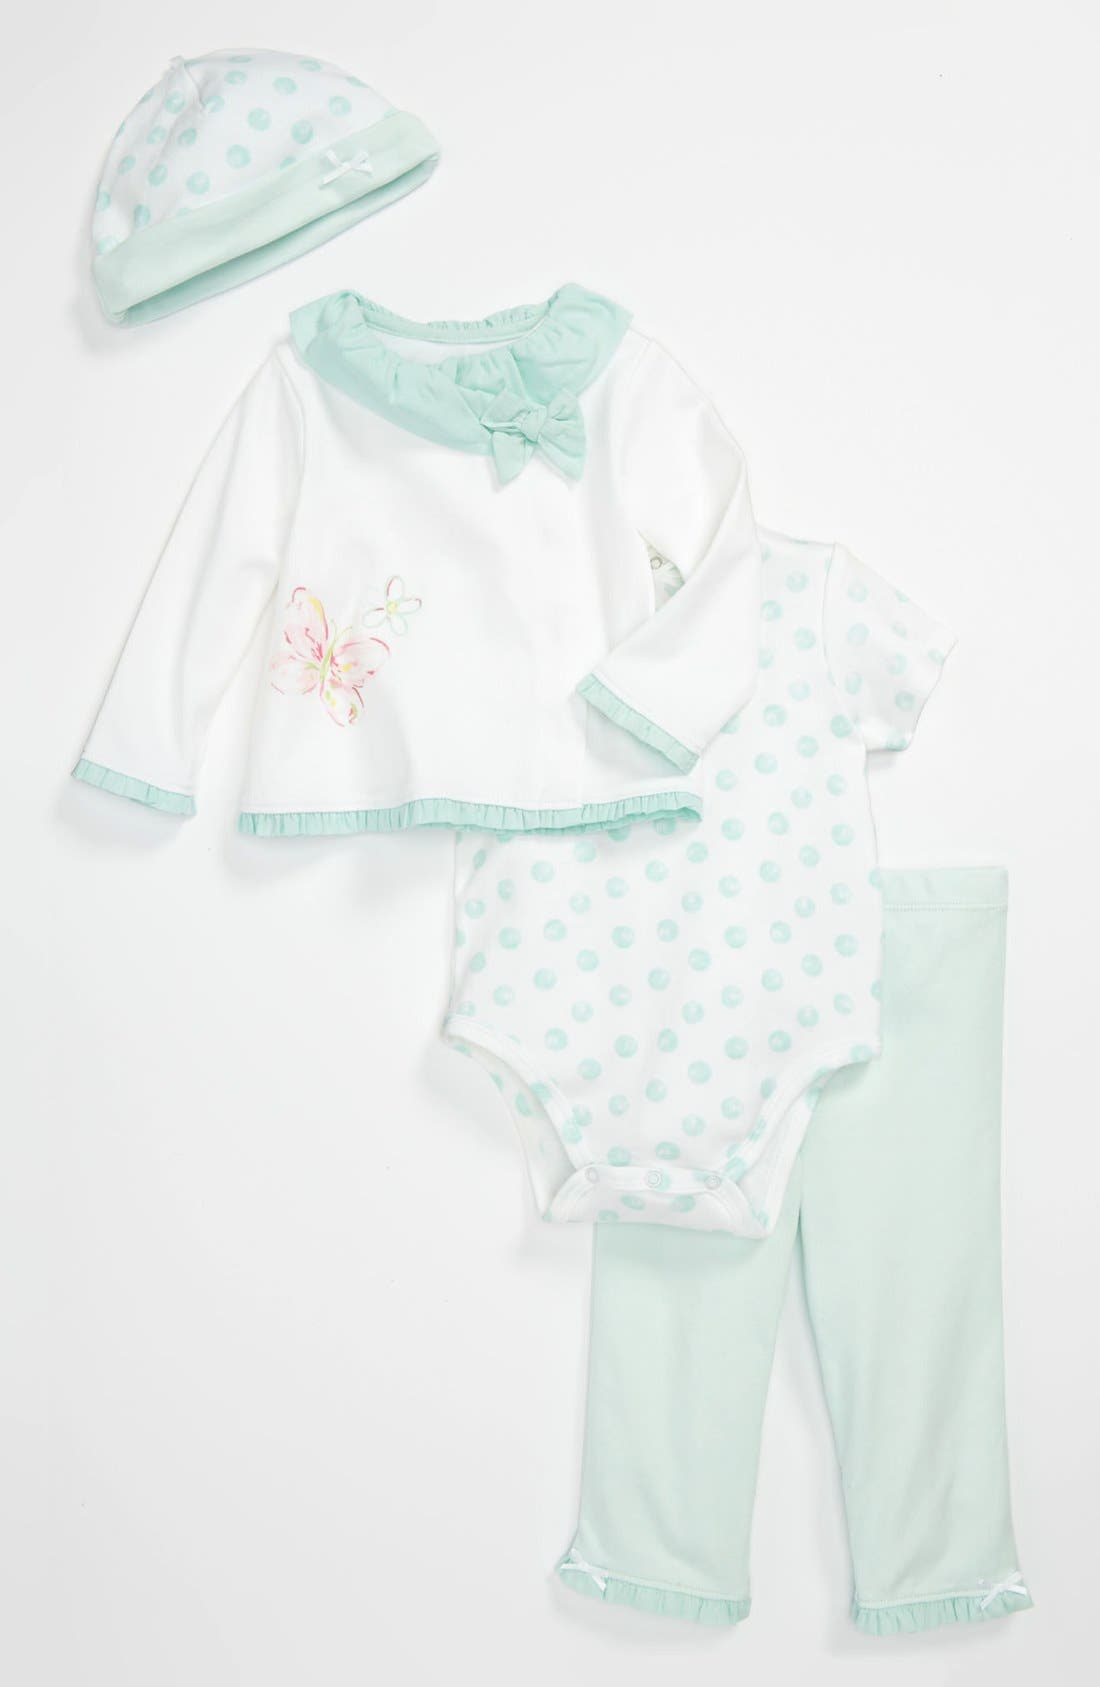 Alternate Image 1 Selected - Little Me 'Take Me Home' Four Piece Set (Baby)